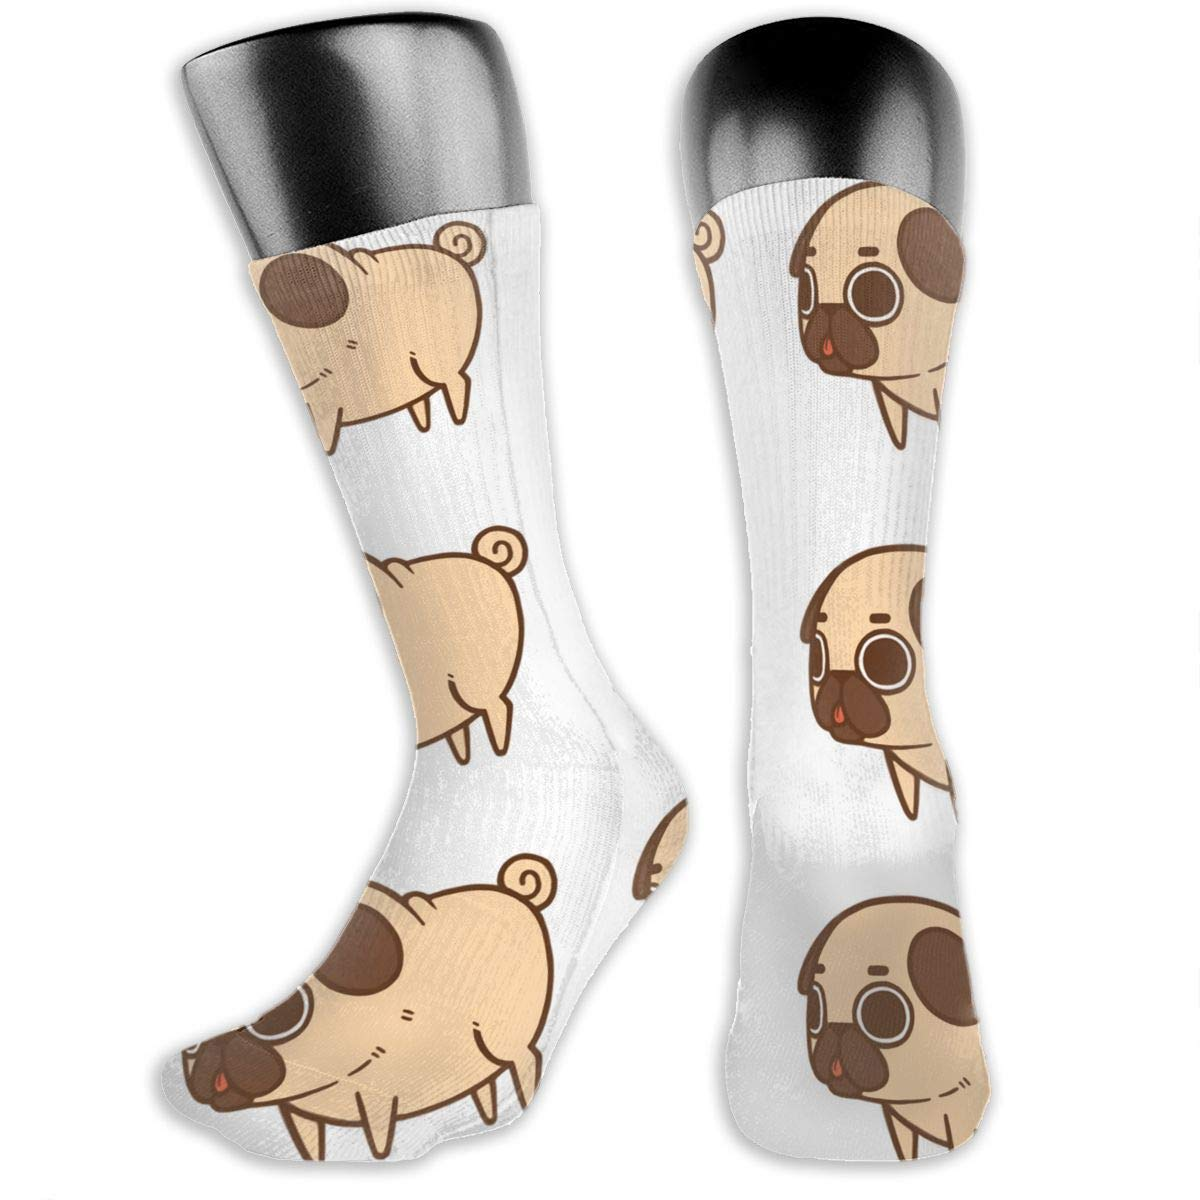 OLGCZM Dog and Puppy Pattern Men Womens Thin High Ankle Casual Socks Fit Outdoor Hiking Trail